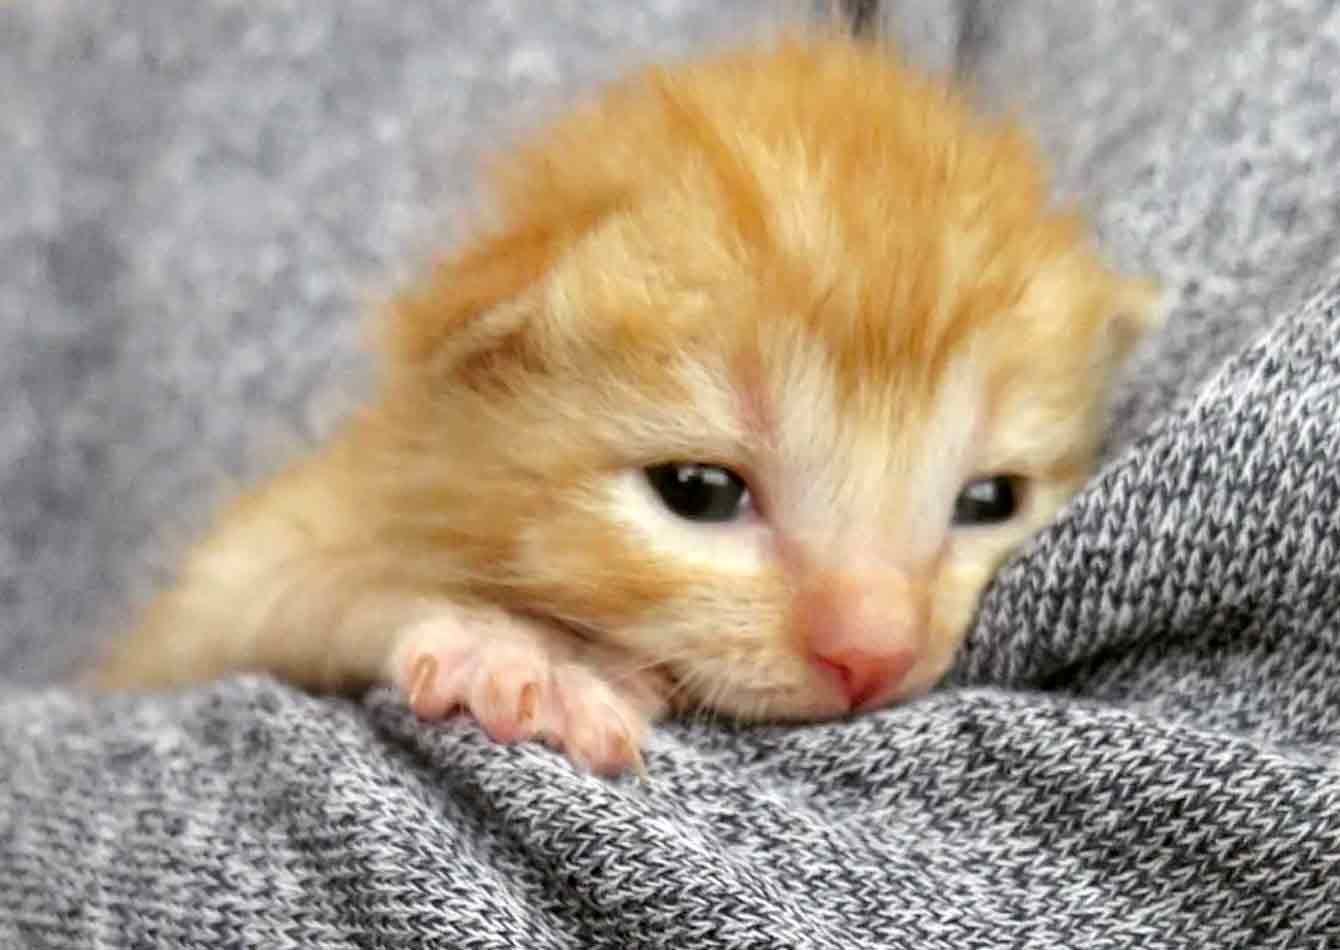 5 Orphaned Ginger Kittens Get Help Just In Time Kittens Cats Kitty Lovecats Cutecats Cuteanimals Ginger Kitten Cats And Kittens Kittens